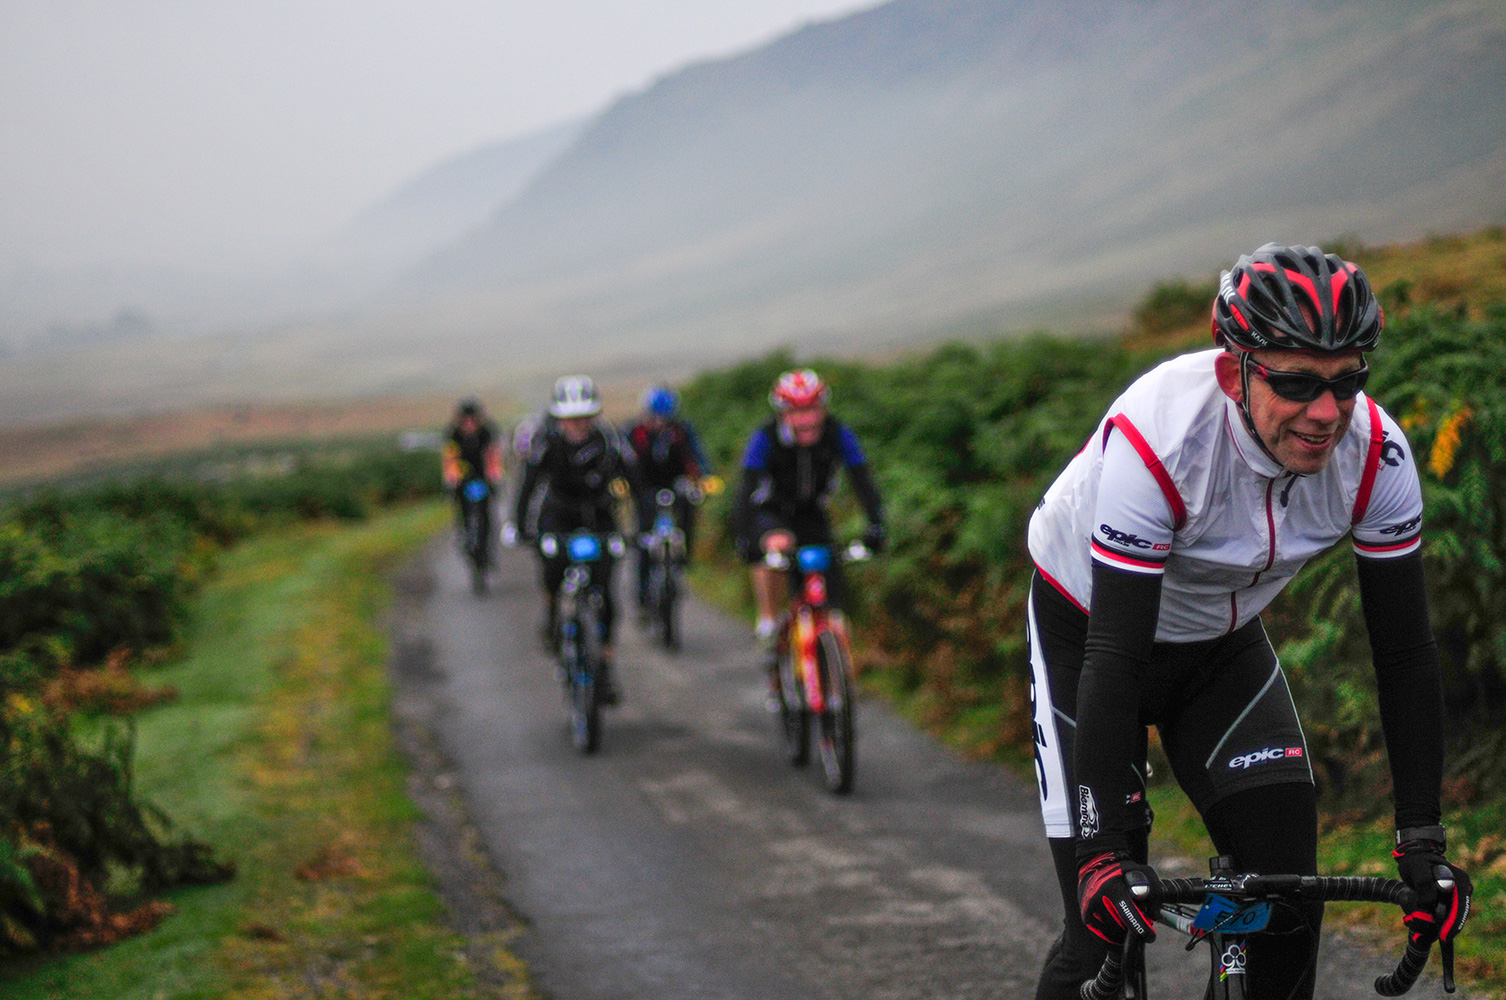 The Monster Miles is a 62 mile (55% off road) Cyclo-Cross Sportive in Cumbria organised by Cycling Weekly and run by Rather Be CyclingHere riders are coming up onto Caldbeck Commons from Mosedale